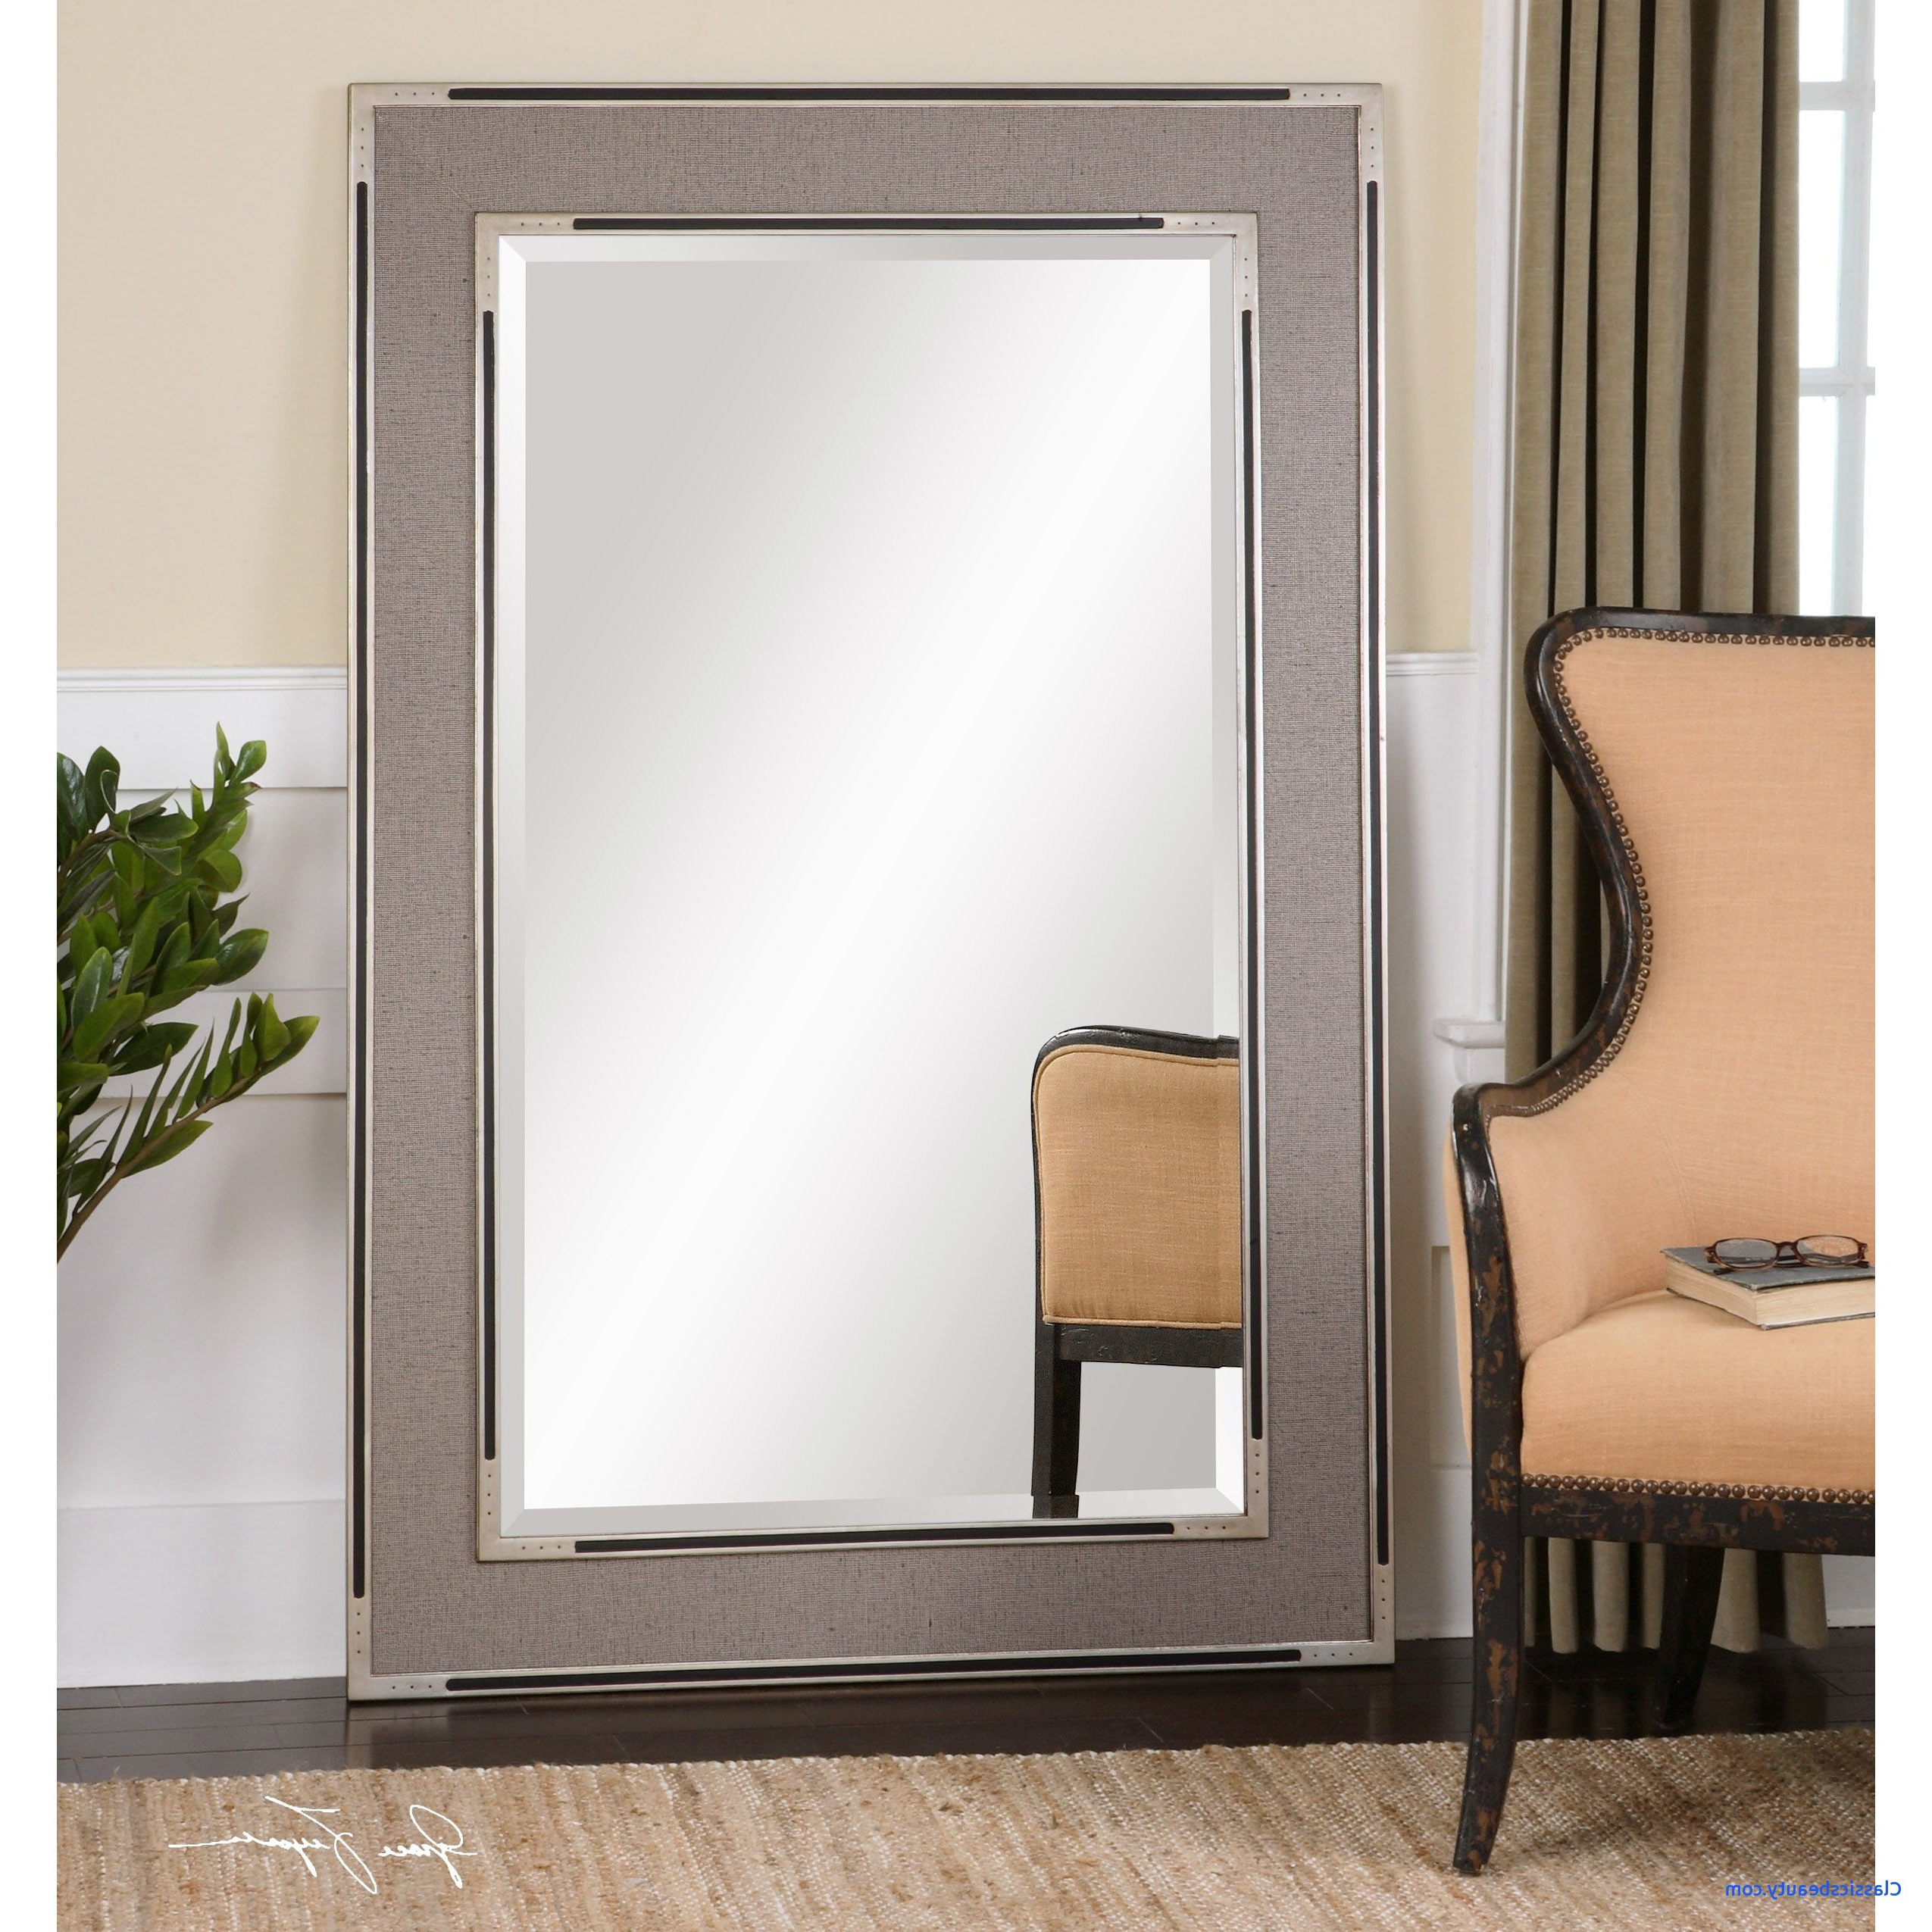 2019 Large Wall Mirrors Best Of With Lights In Sleek Decorative Throughout Decorative Rectangular Wall Mirrors (View 1 of 20)